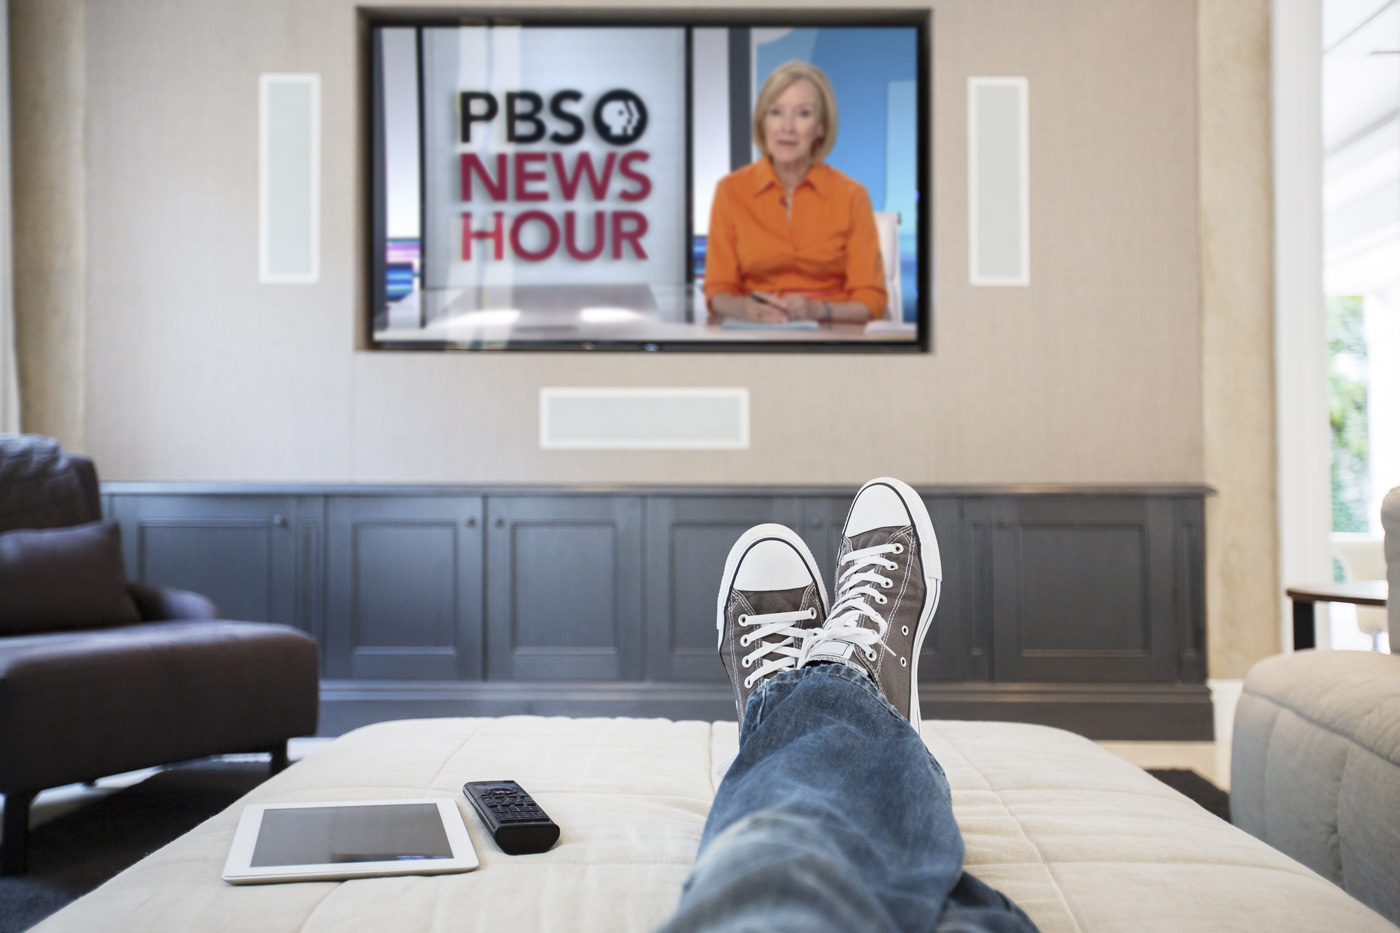 How to watch the PBS NewsHour | PBS NewsHour